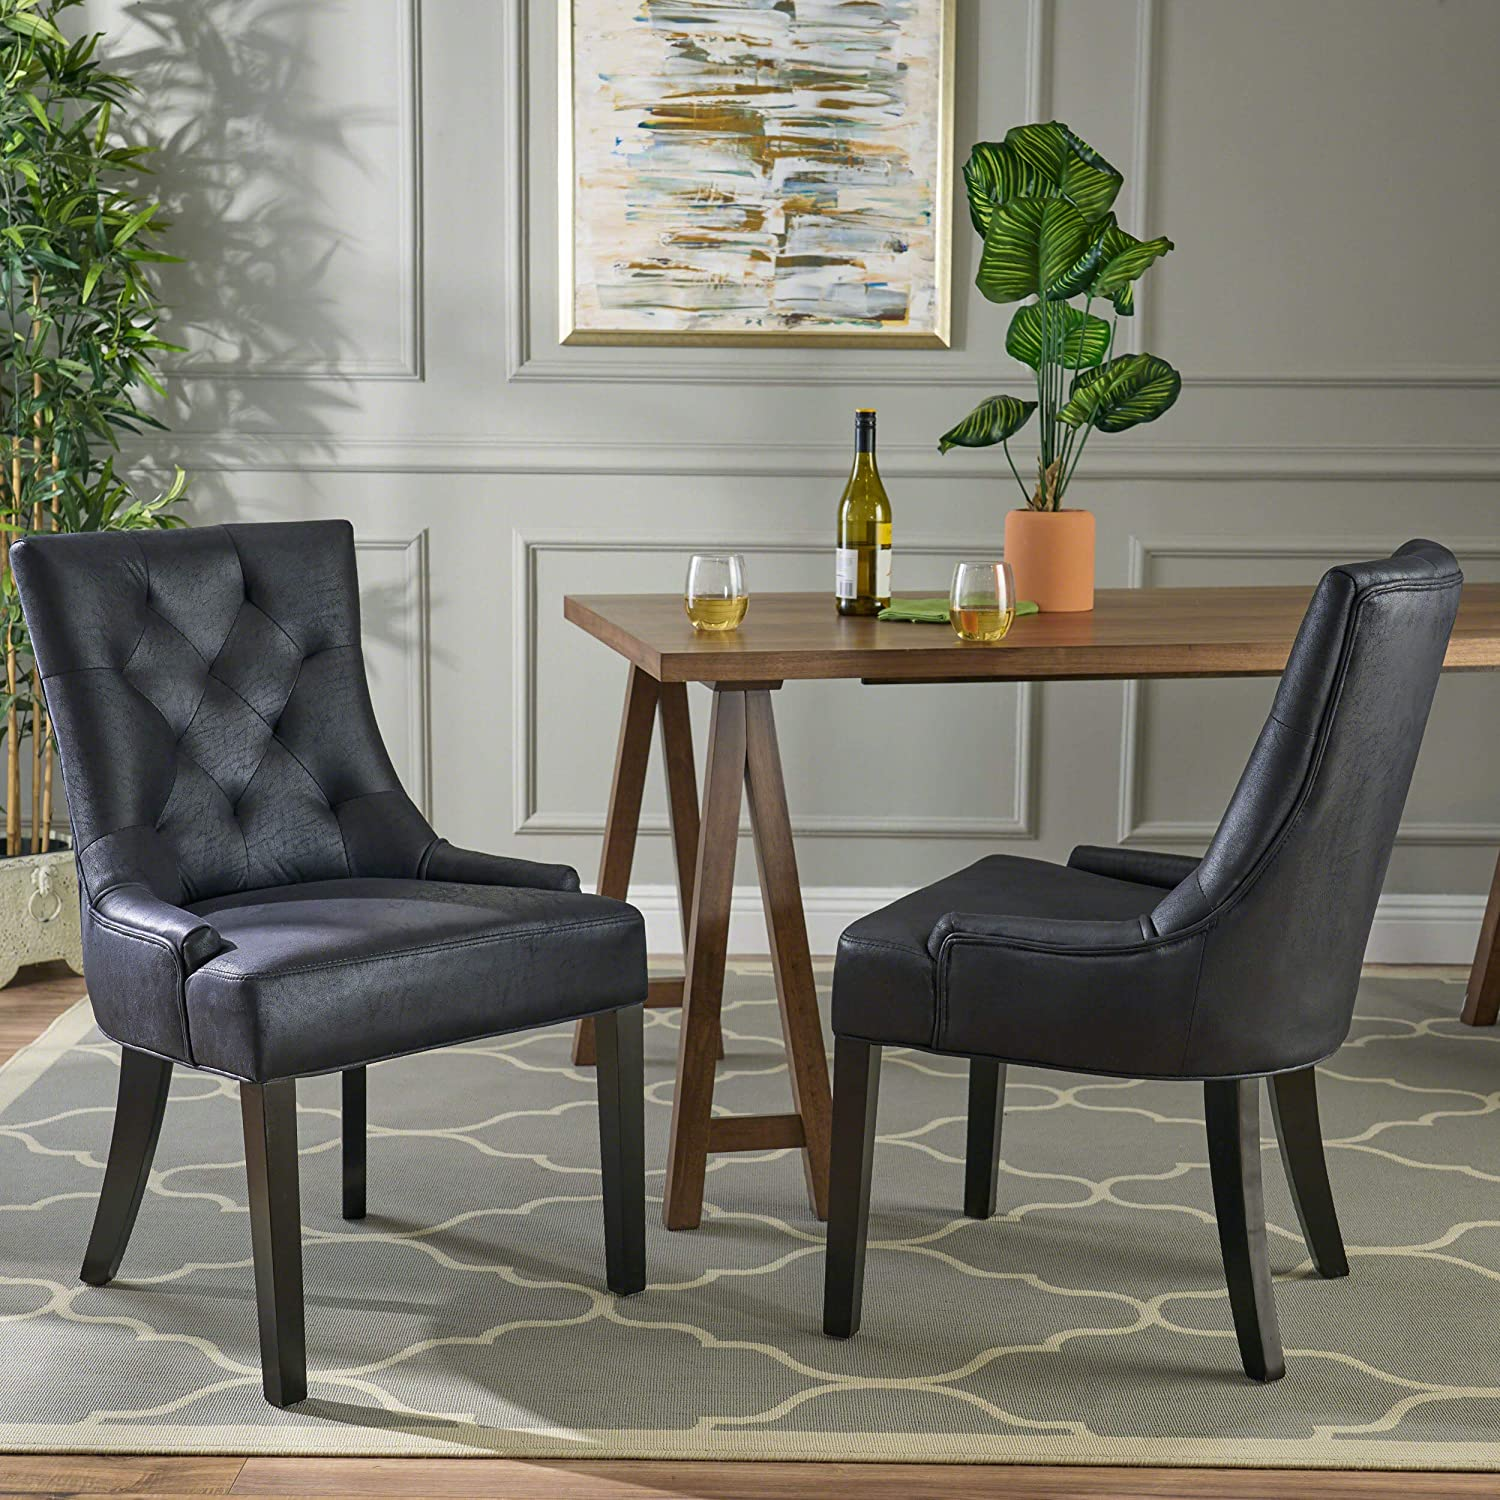 Christopher Knight Home Sarah Traditional Microfiber Dining Chairs (Set of 2), Navy Blue